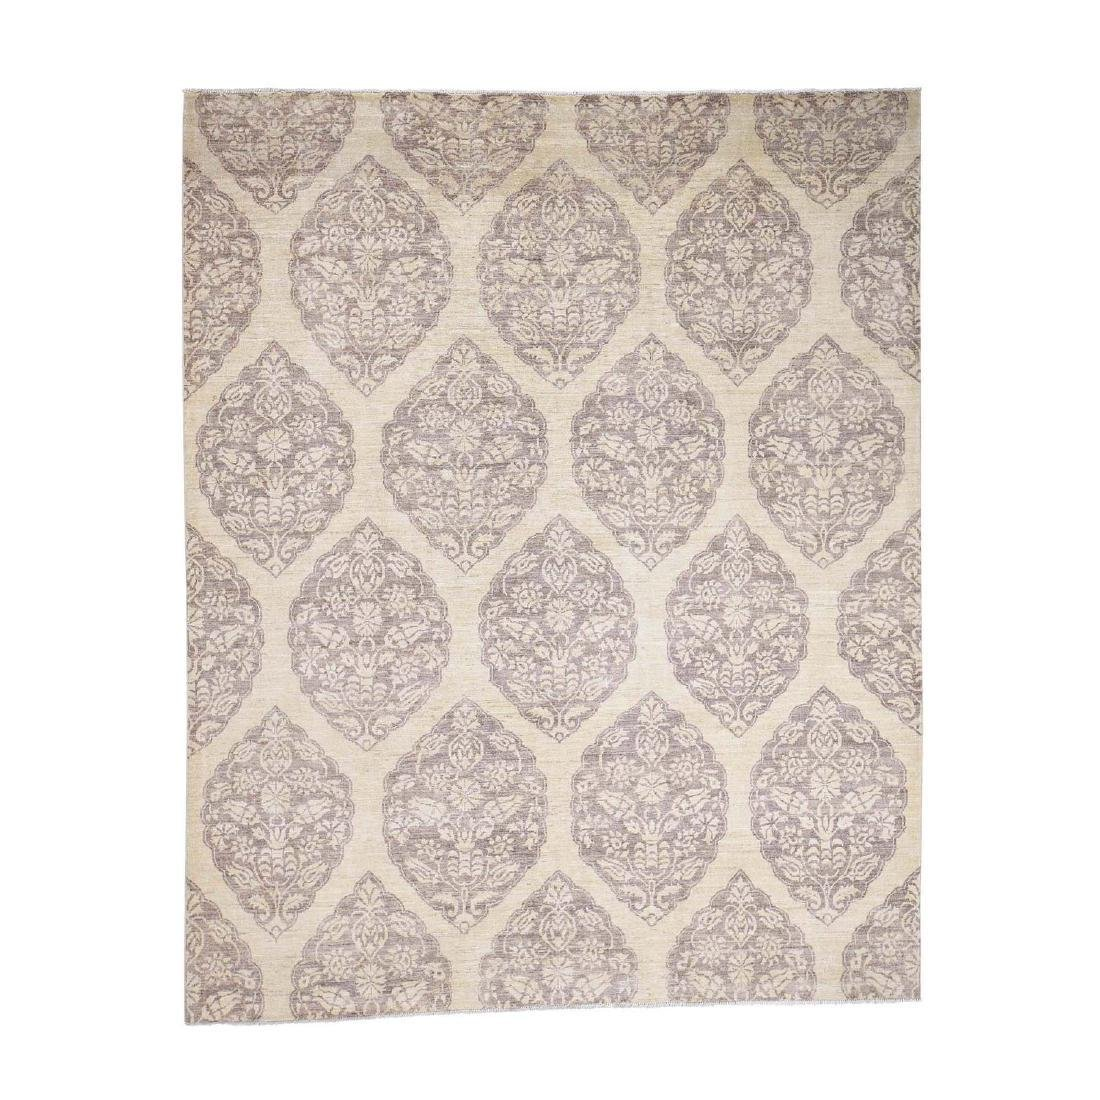 Pure Wool Peshawar with Mughal Design Hand Knotted Rug